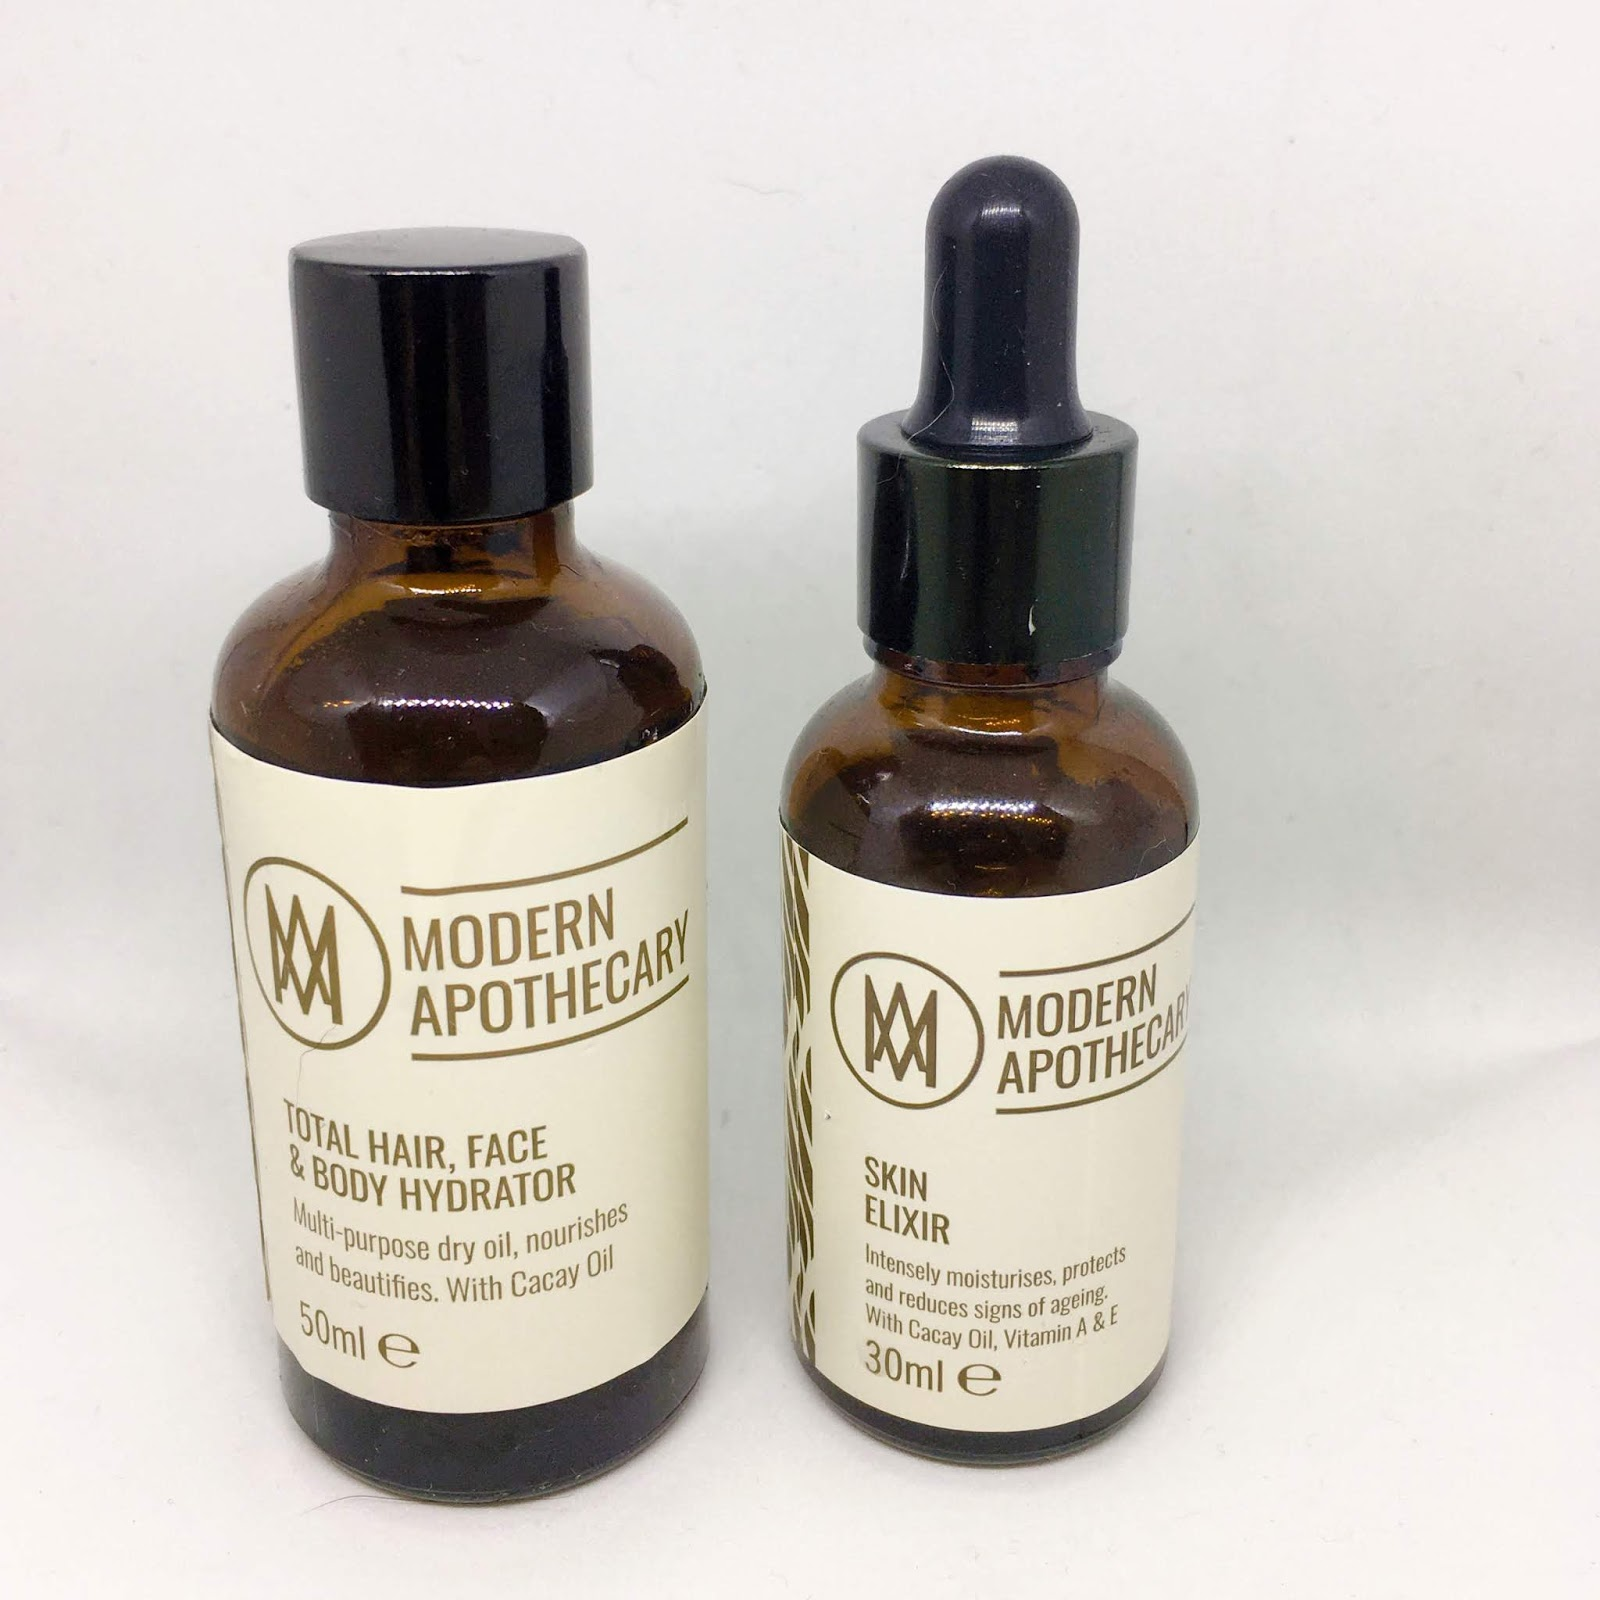 Modern Apothecary Skin Elixir and Face, Hair & Body Oil